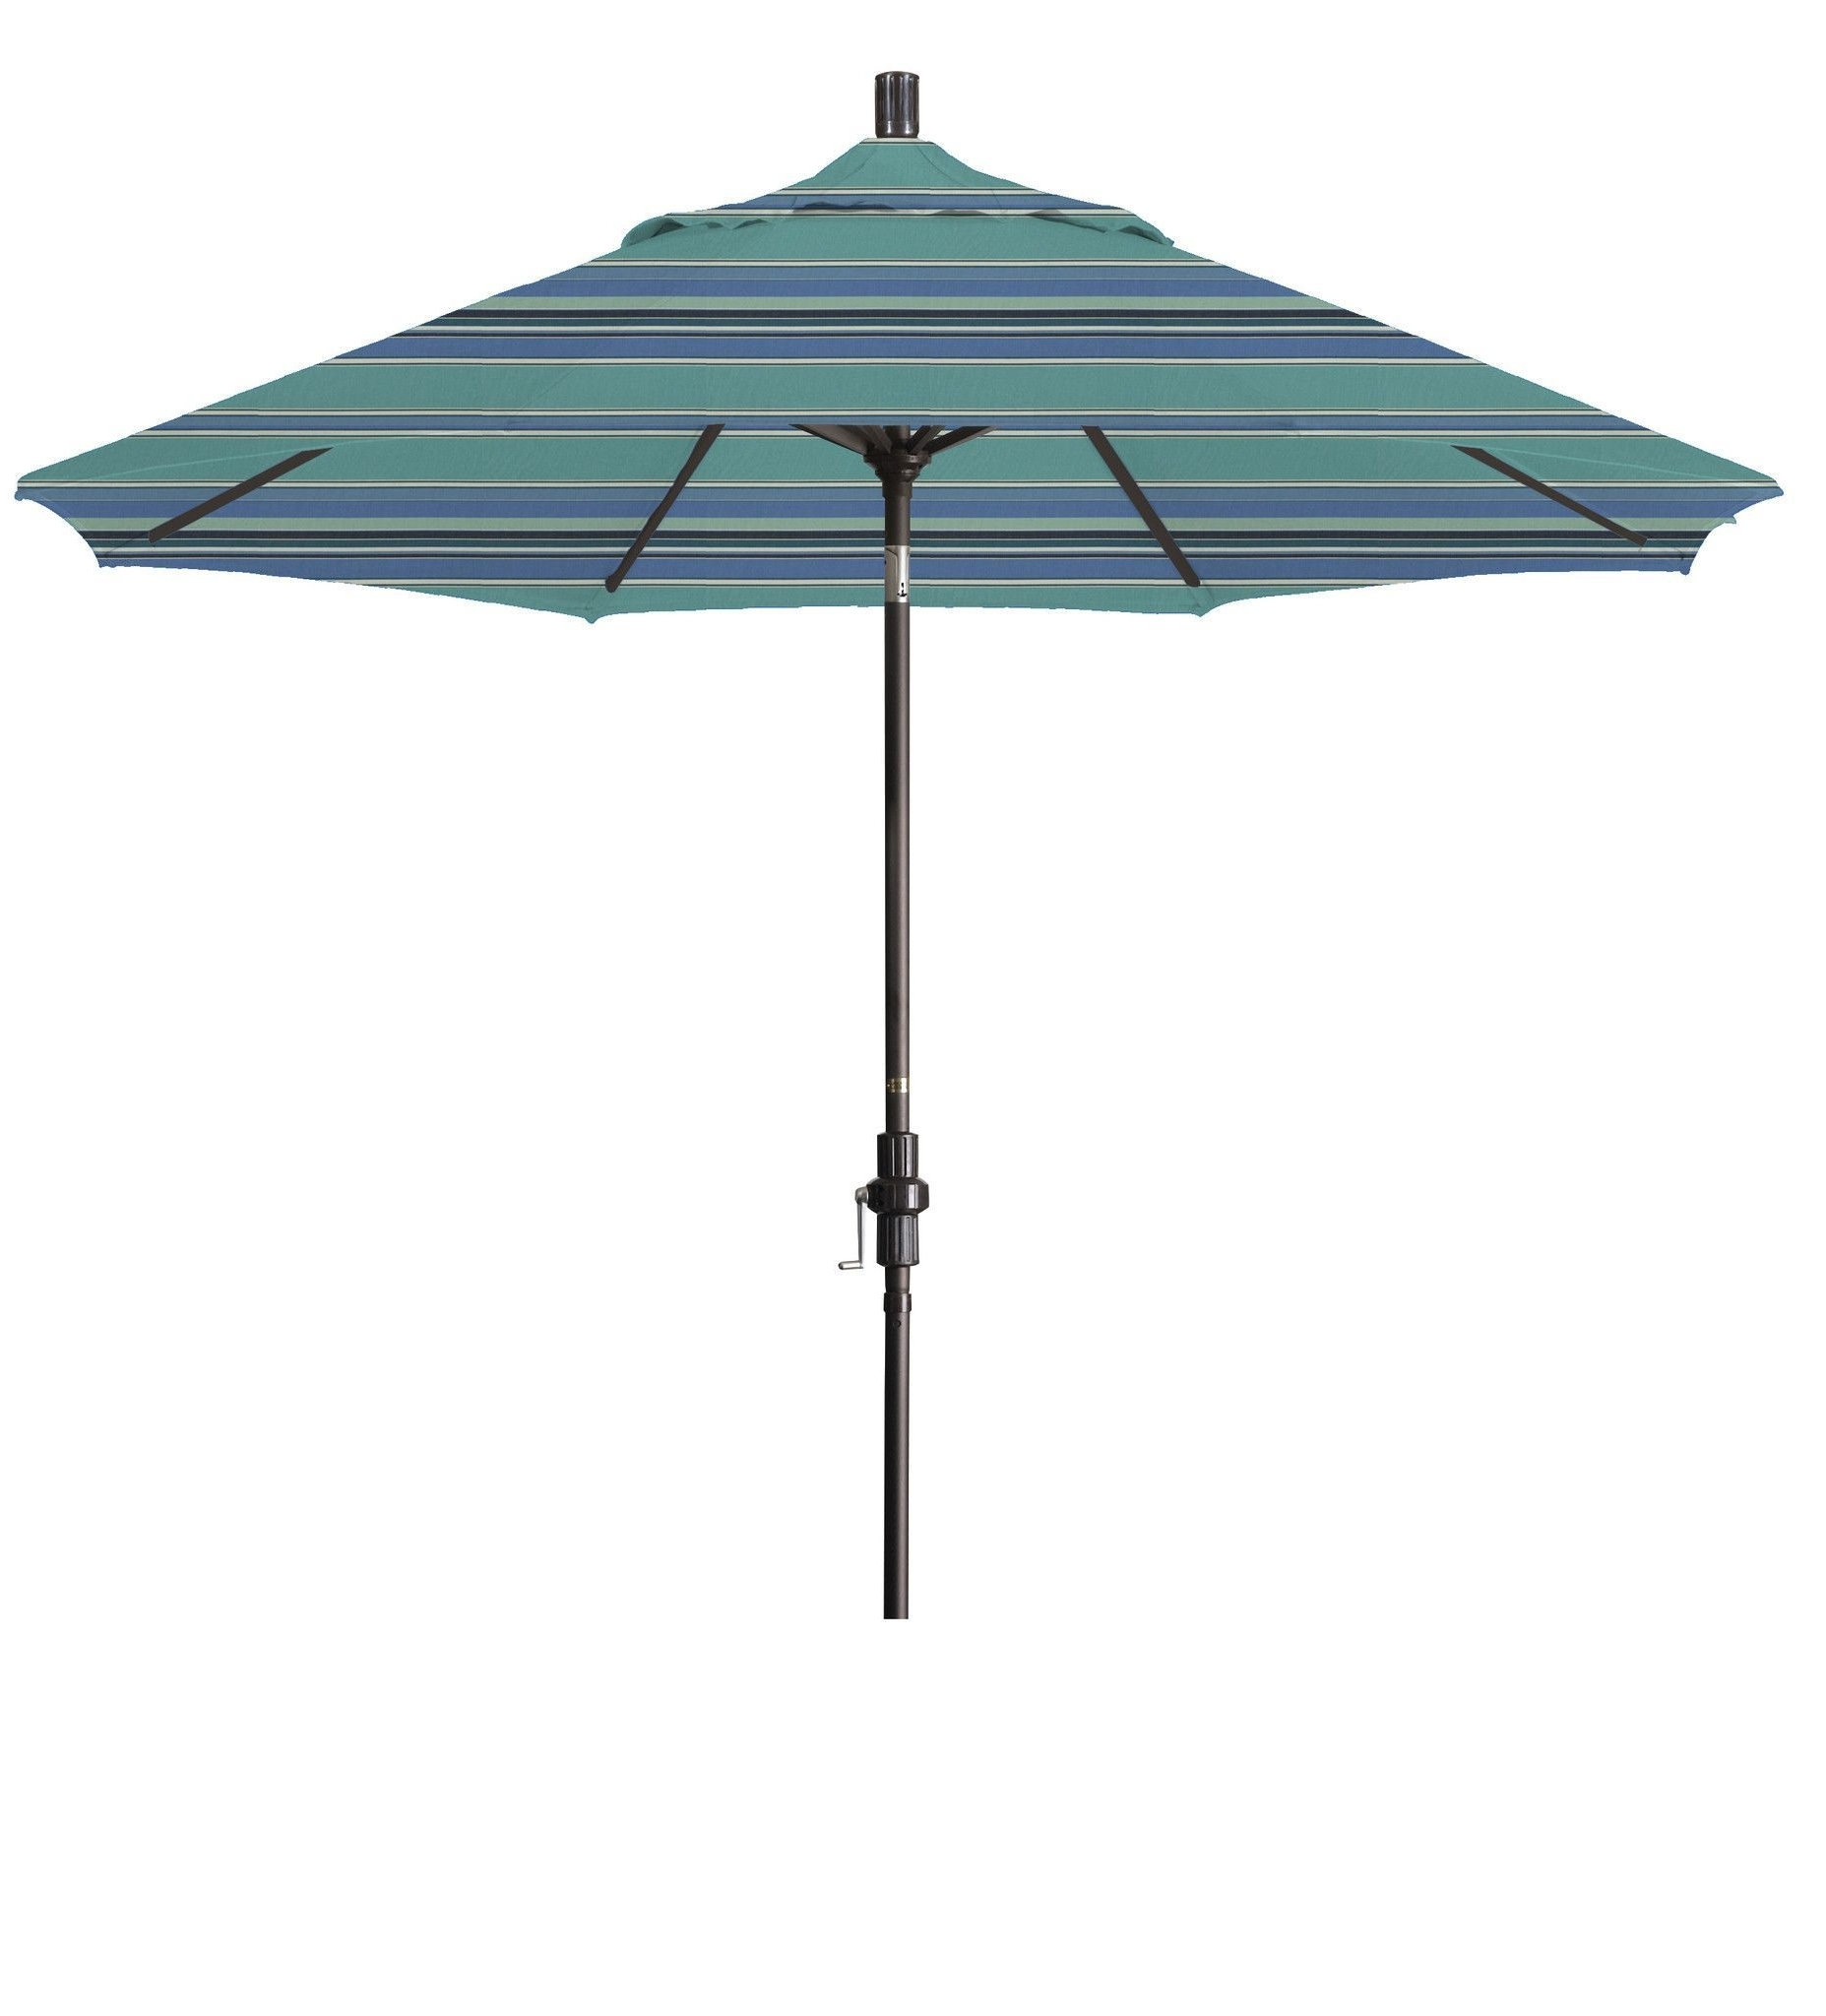 Eclipse Collection 9' Aluminum Market Umbrella Collar Tilt – Bronze Throughout Current Eclipse Patio Umbrellas (View 7 of 20)